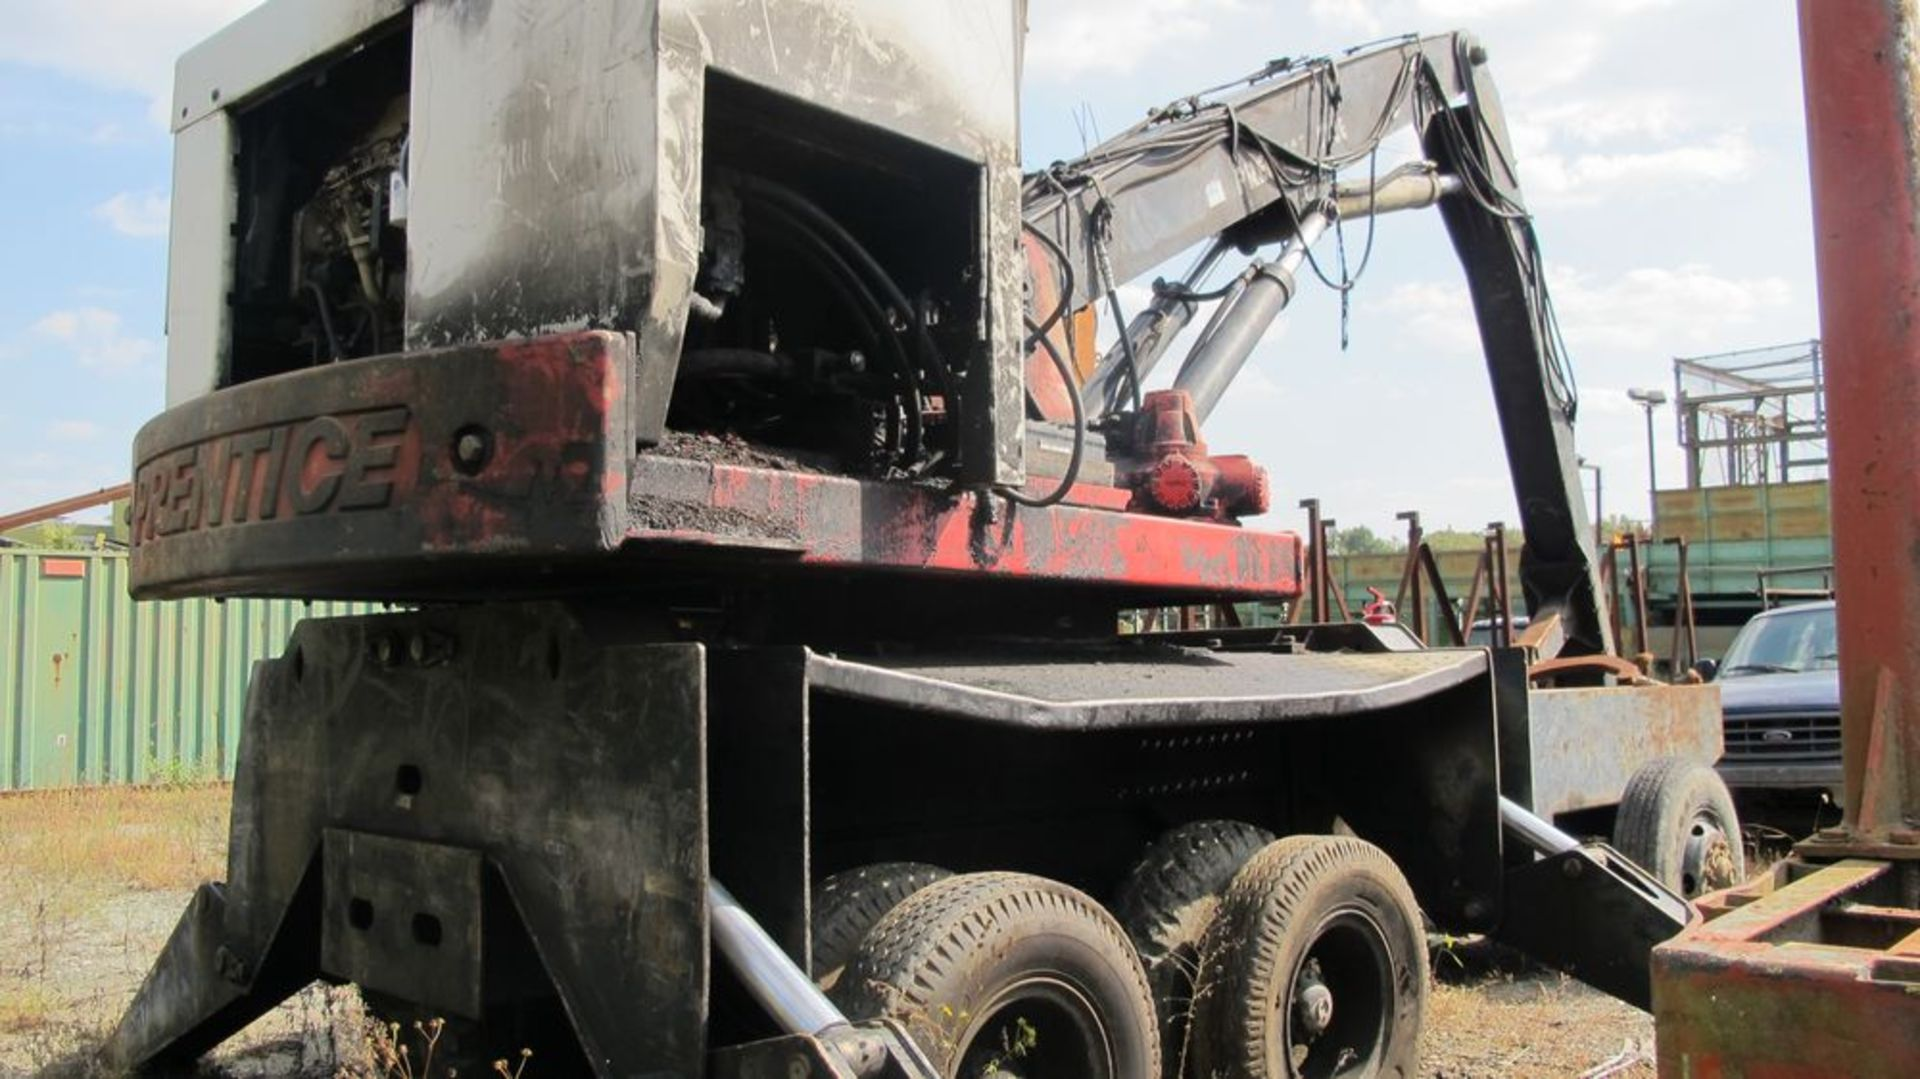 Lot 9 - PRENTACE 410E KNUCKLE BOOM, D410F-SPA, VIN 410P53586 W/GRAPPLE (RUNNING) (WEST WOOD YARD)